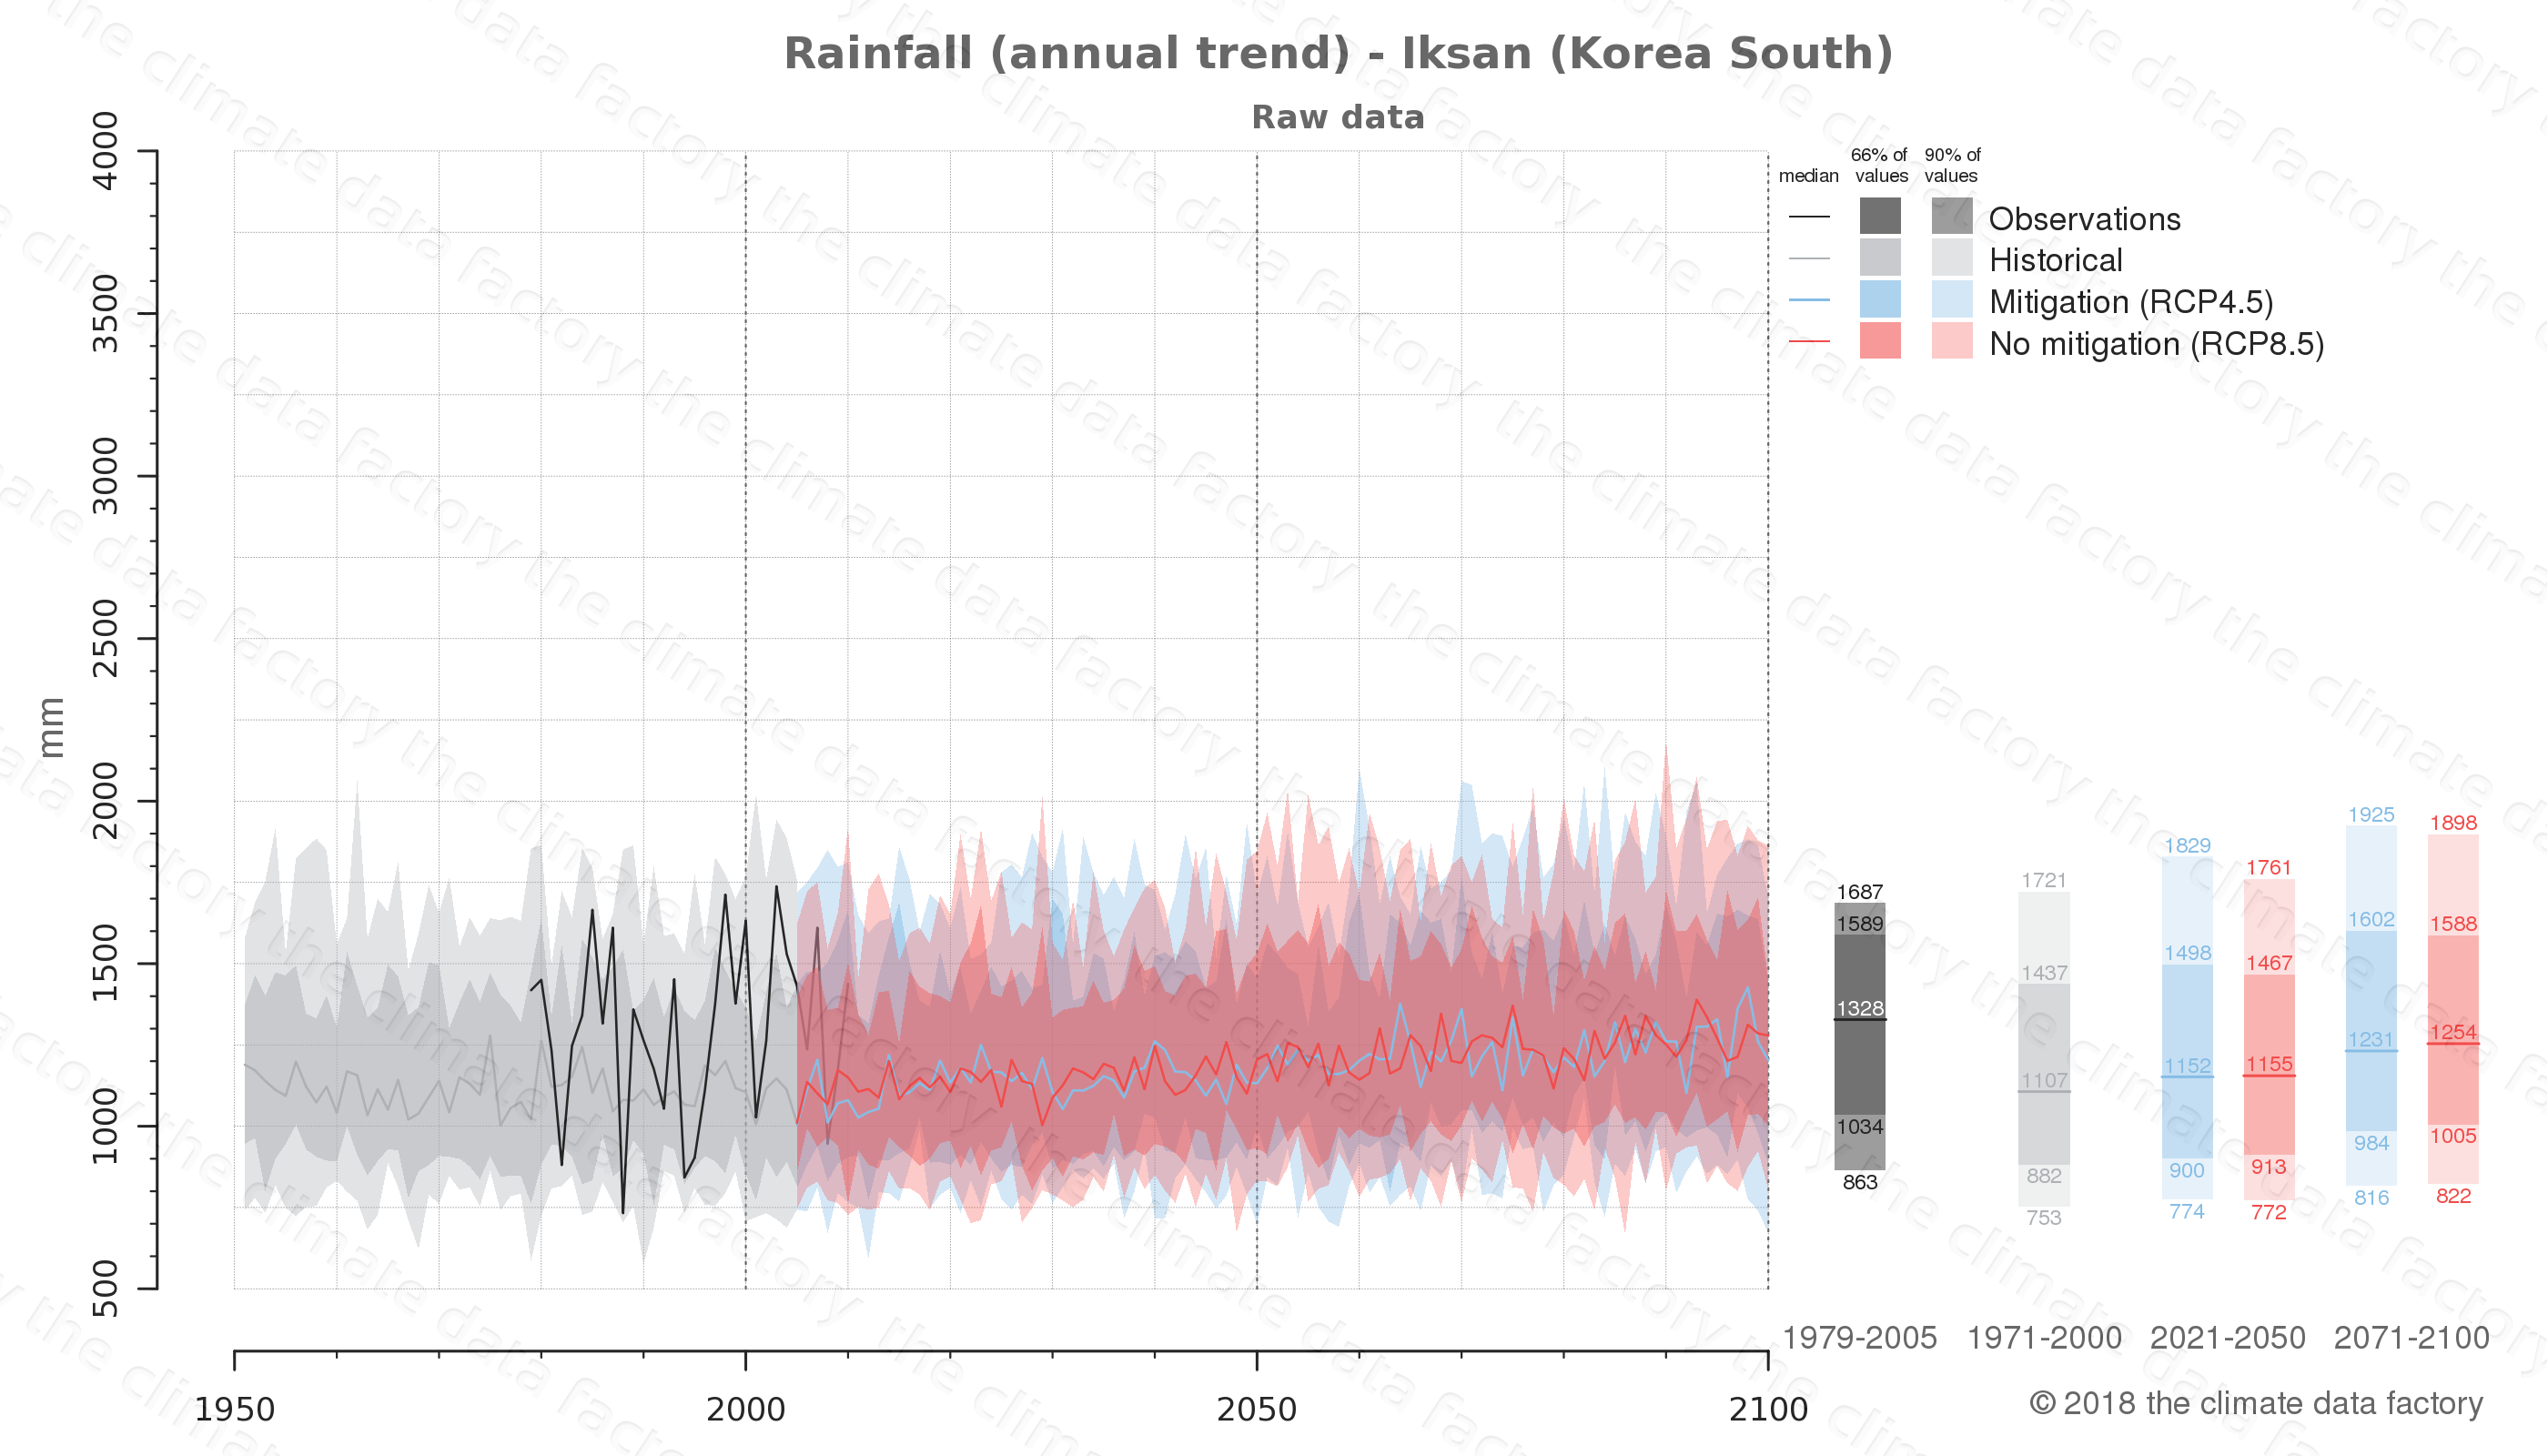 climate change data policy adaptation climate graph city data rainfall iksan south korea